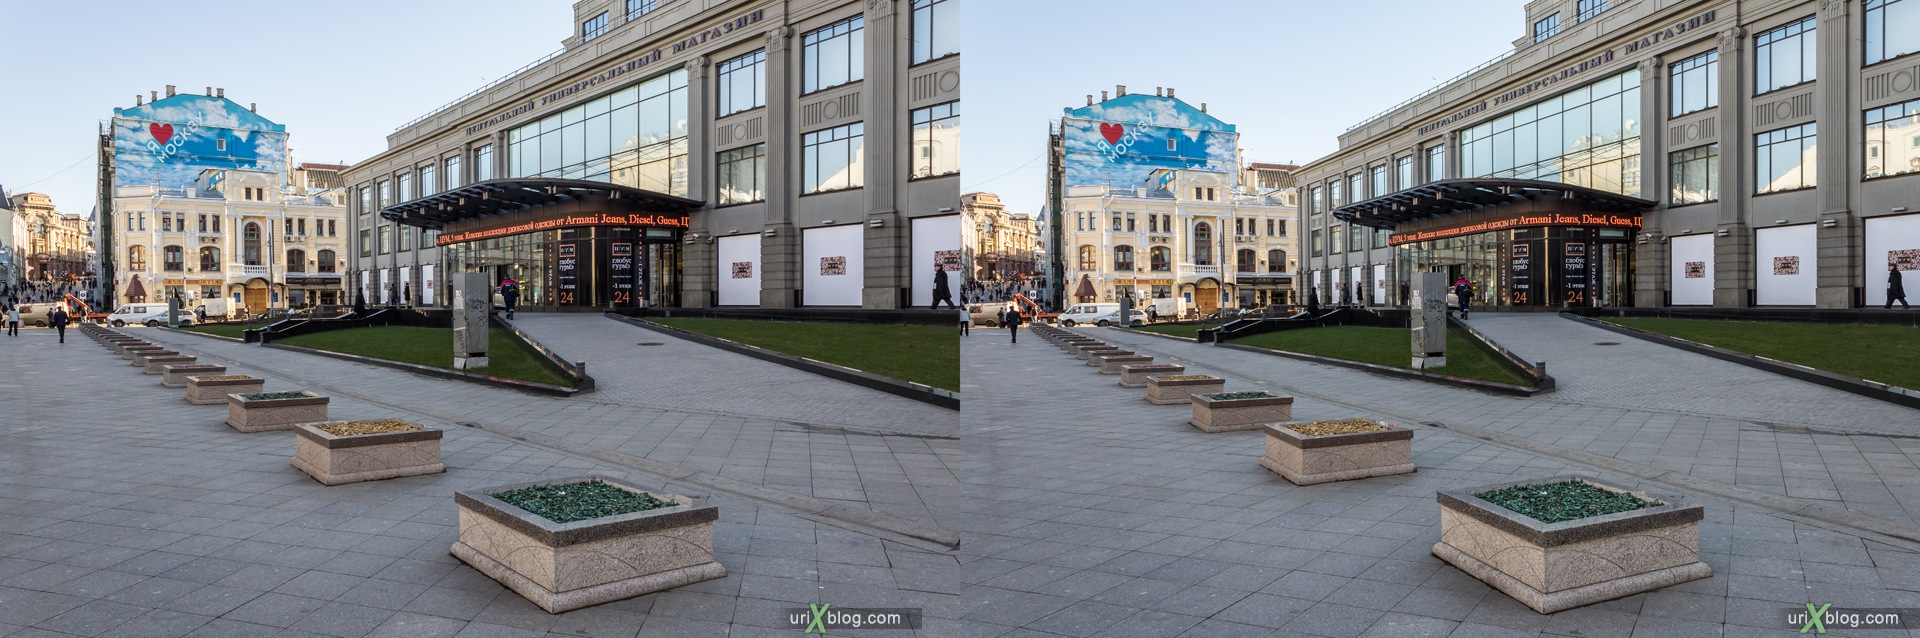 2013, Moscow, Russia, Kuznetsky most, street, new pedestrian zone, 3D, stereo pair, cross-eyed, crossview, cross view stereo pair, stereoscopic